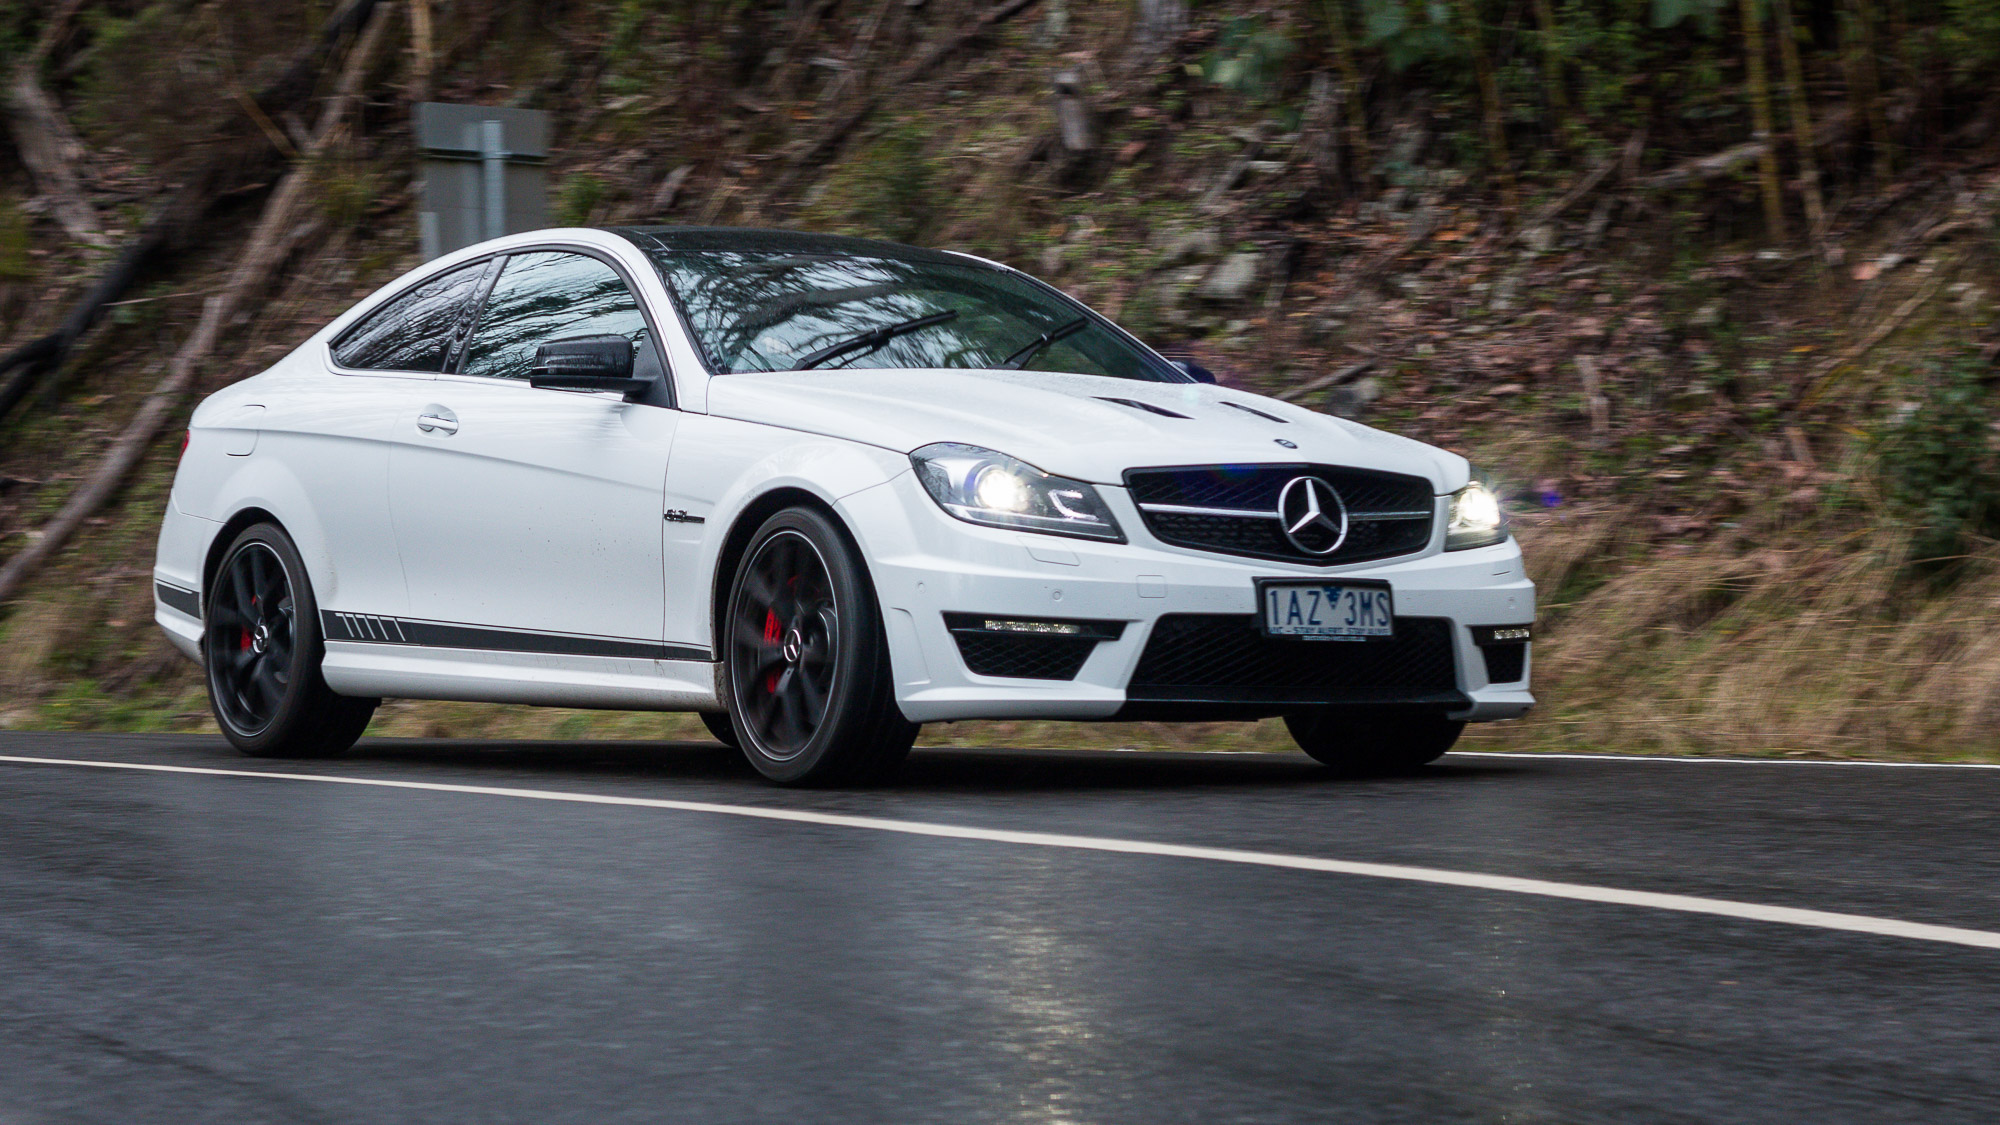 Bmw m4 v mercedes benz c63 amg edition 507 comparison for Mercedes benz c63 amg